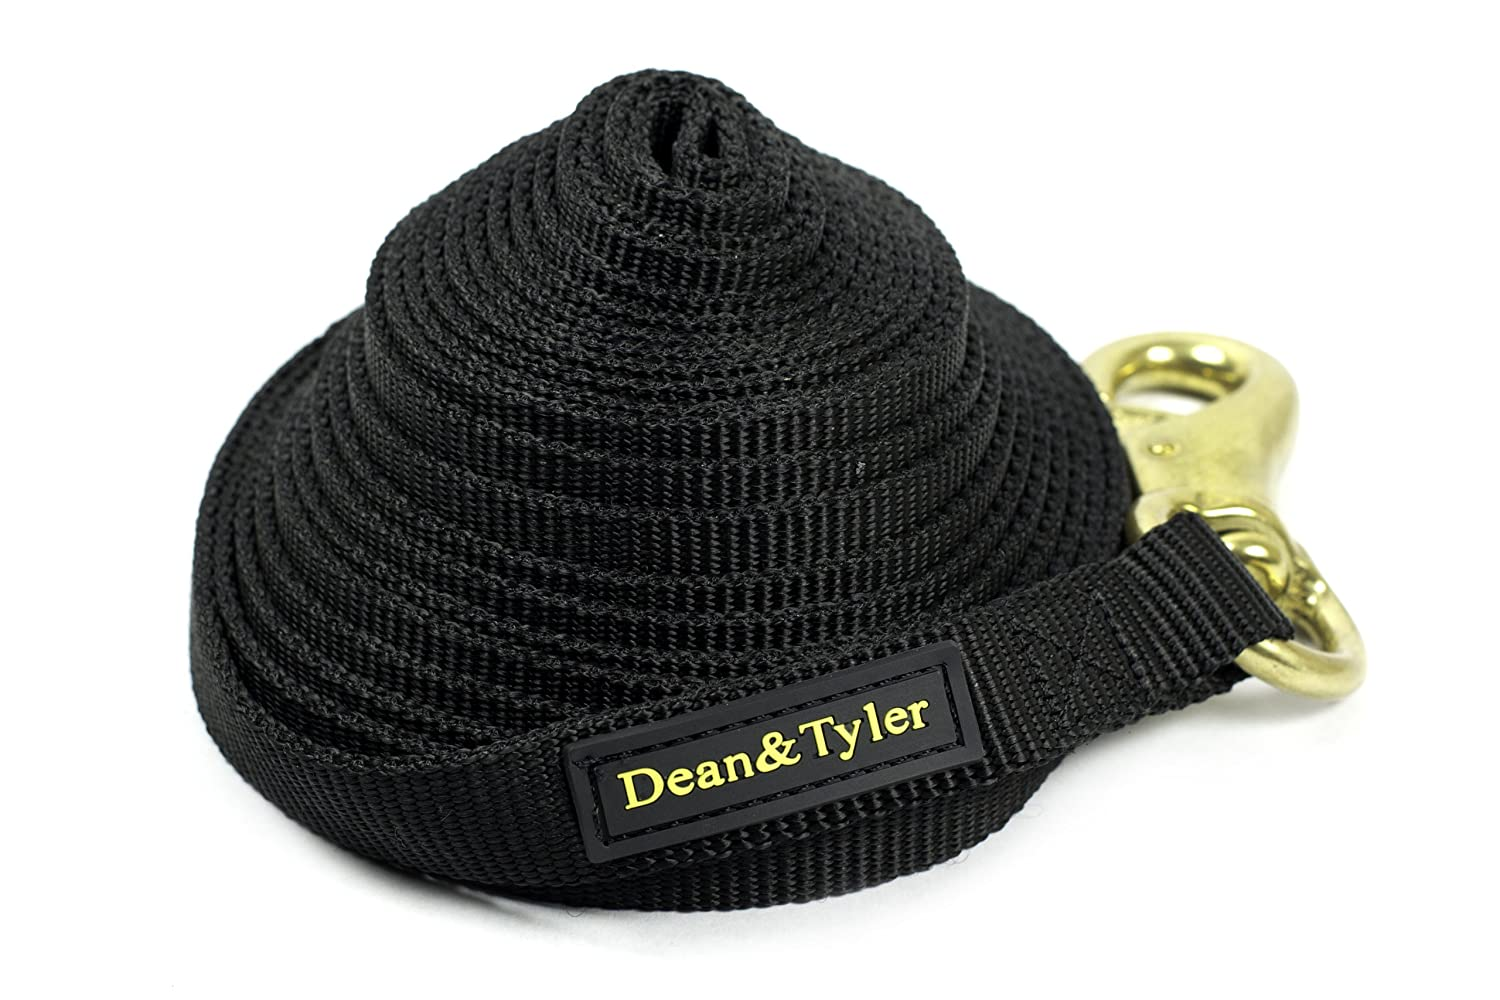 Dean and Tyler Nylon Track Dog Leash, Black 10-Feet by 3 4-Inch Width With Extra Strength Brass Snap.